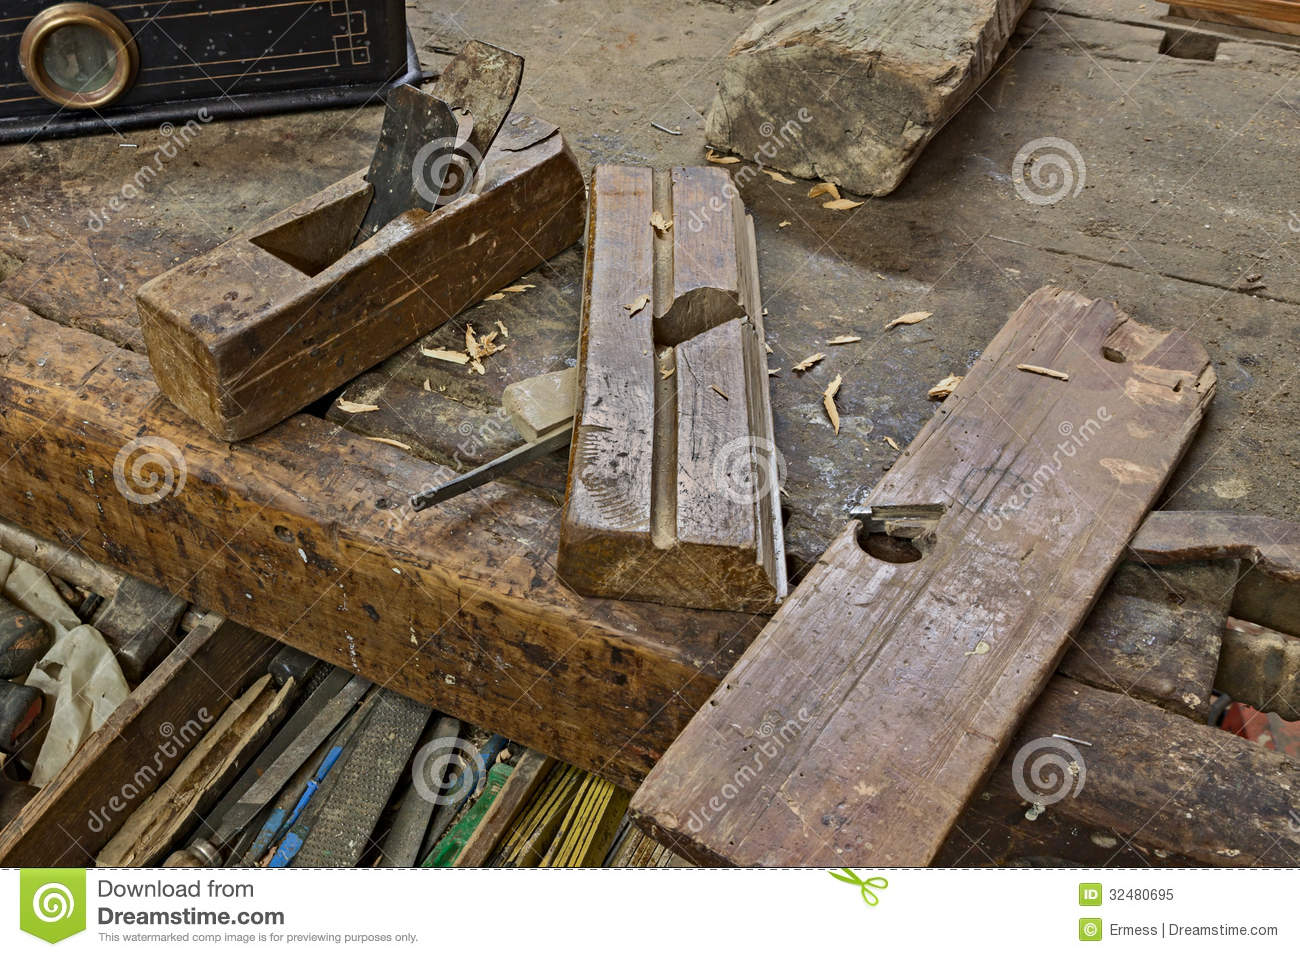 ... on the carpenter's bench - ancient carpentry tools for woodworking